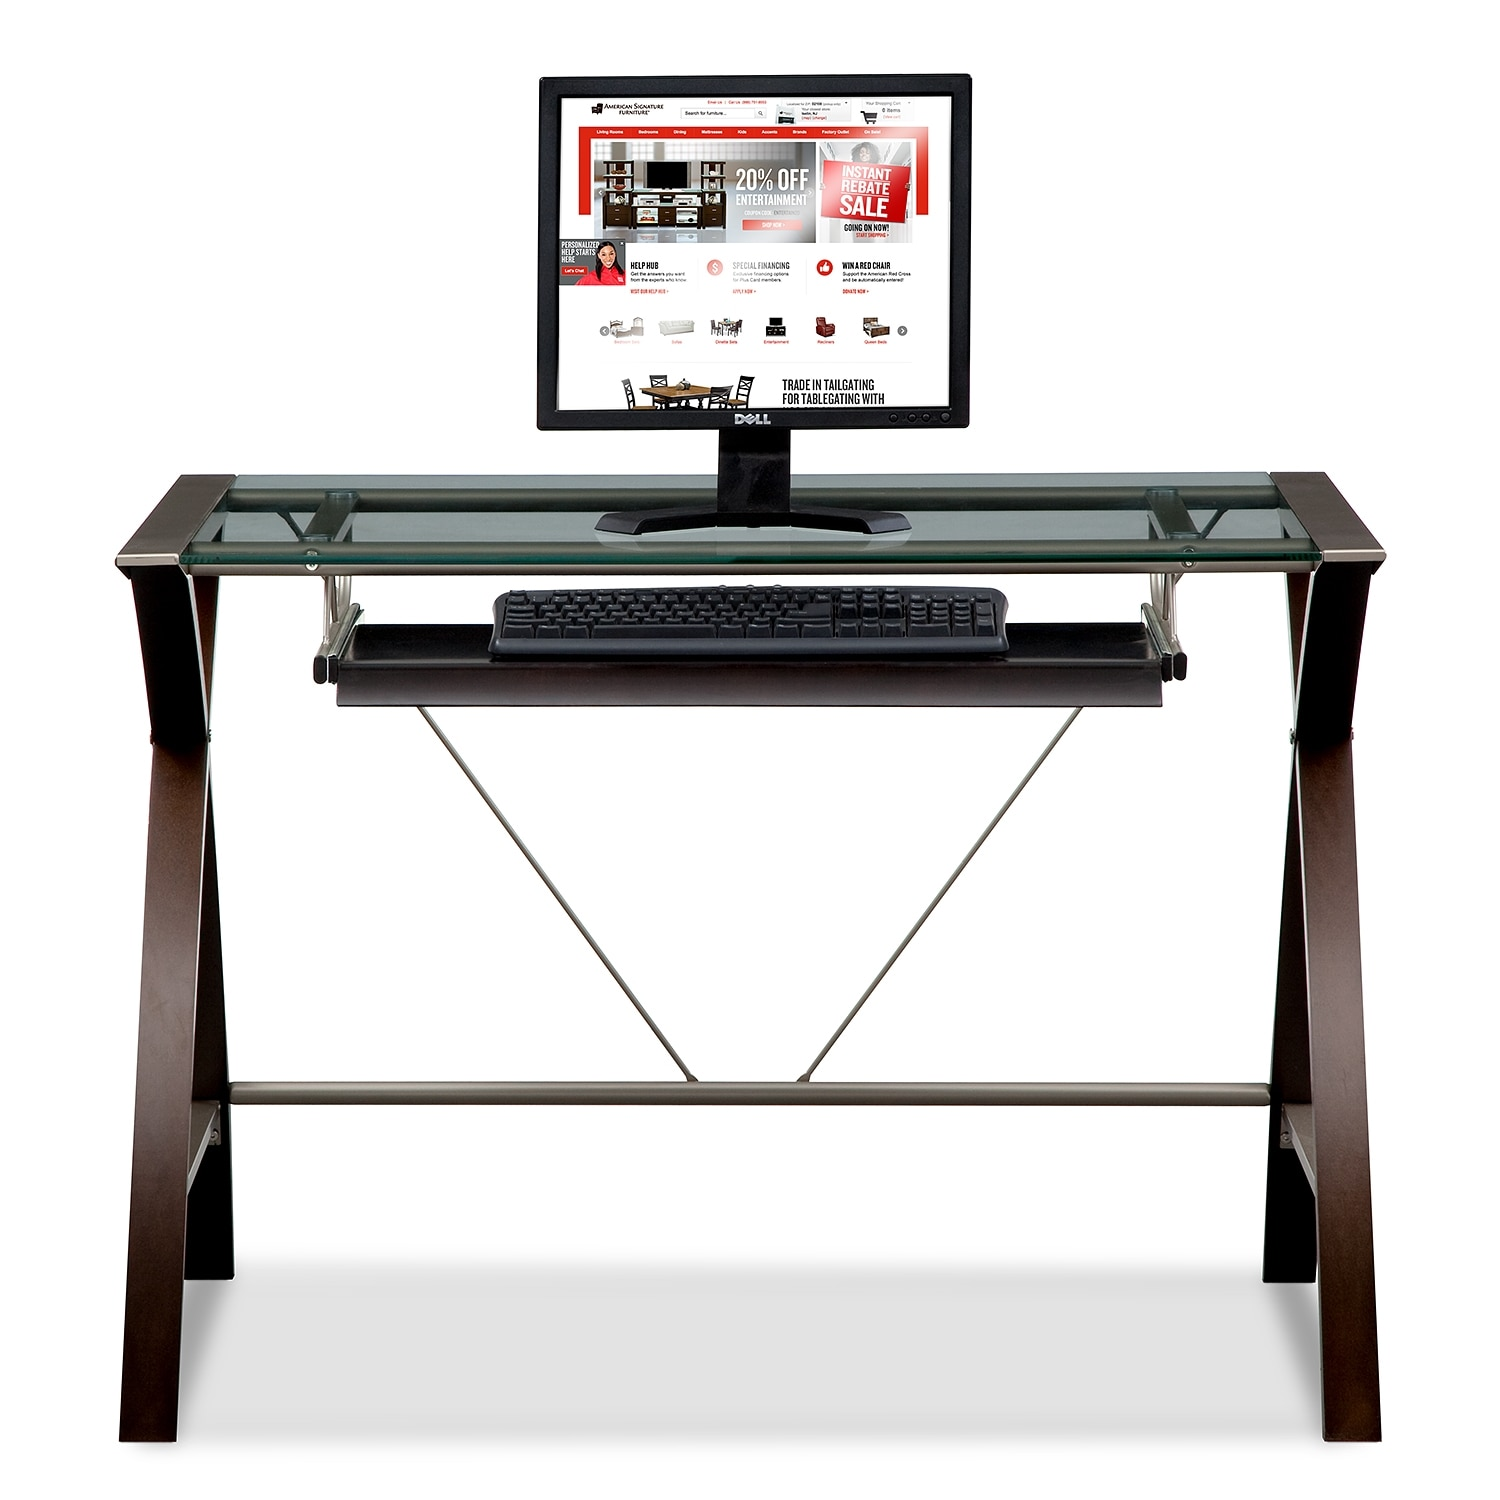 orion computer desk with keyboard tray  merlot and champagne  - click to change image